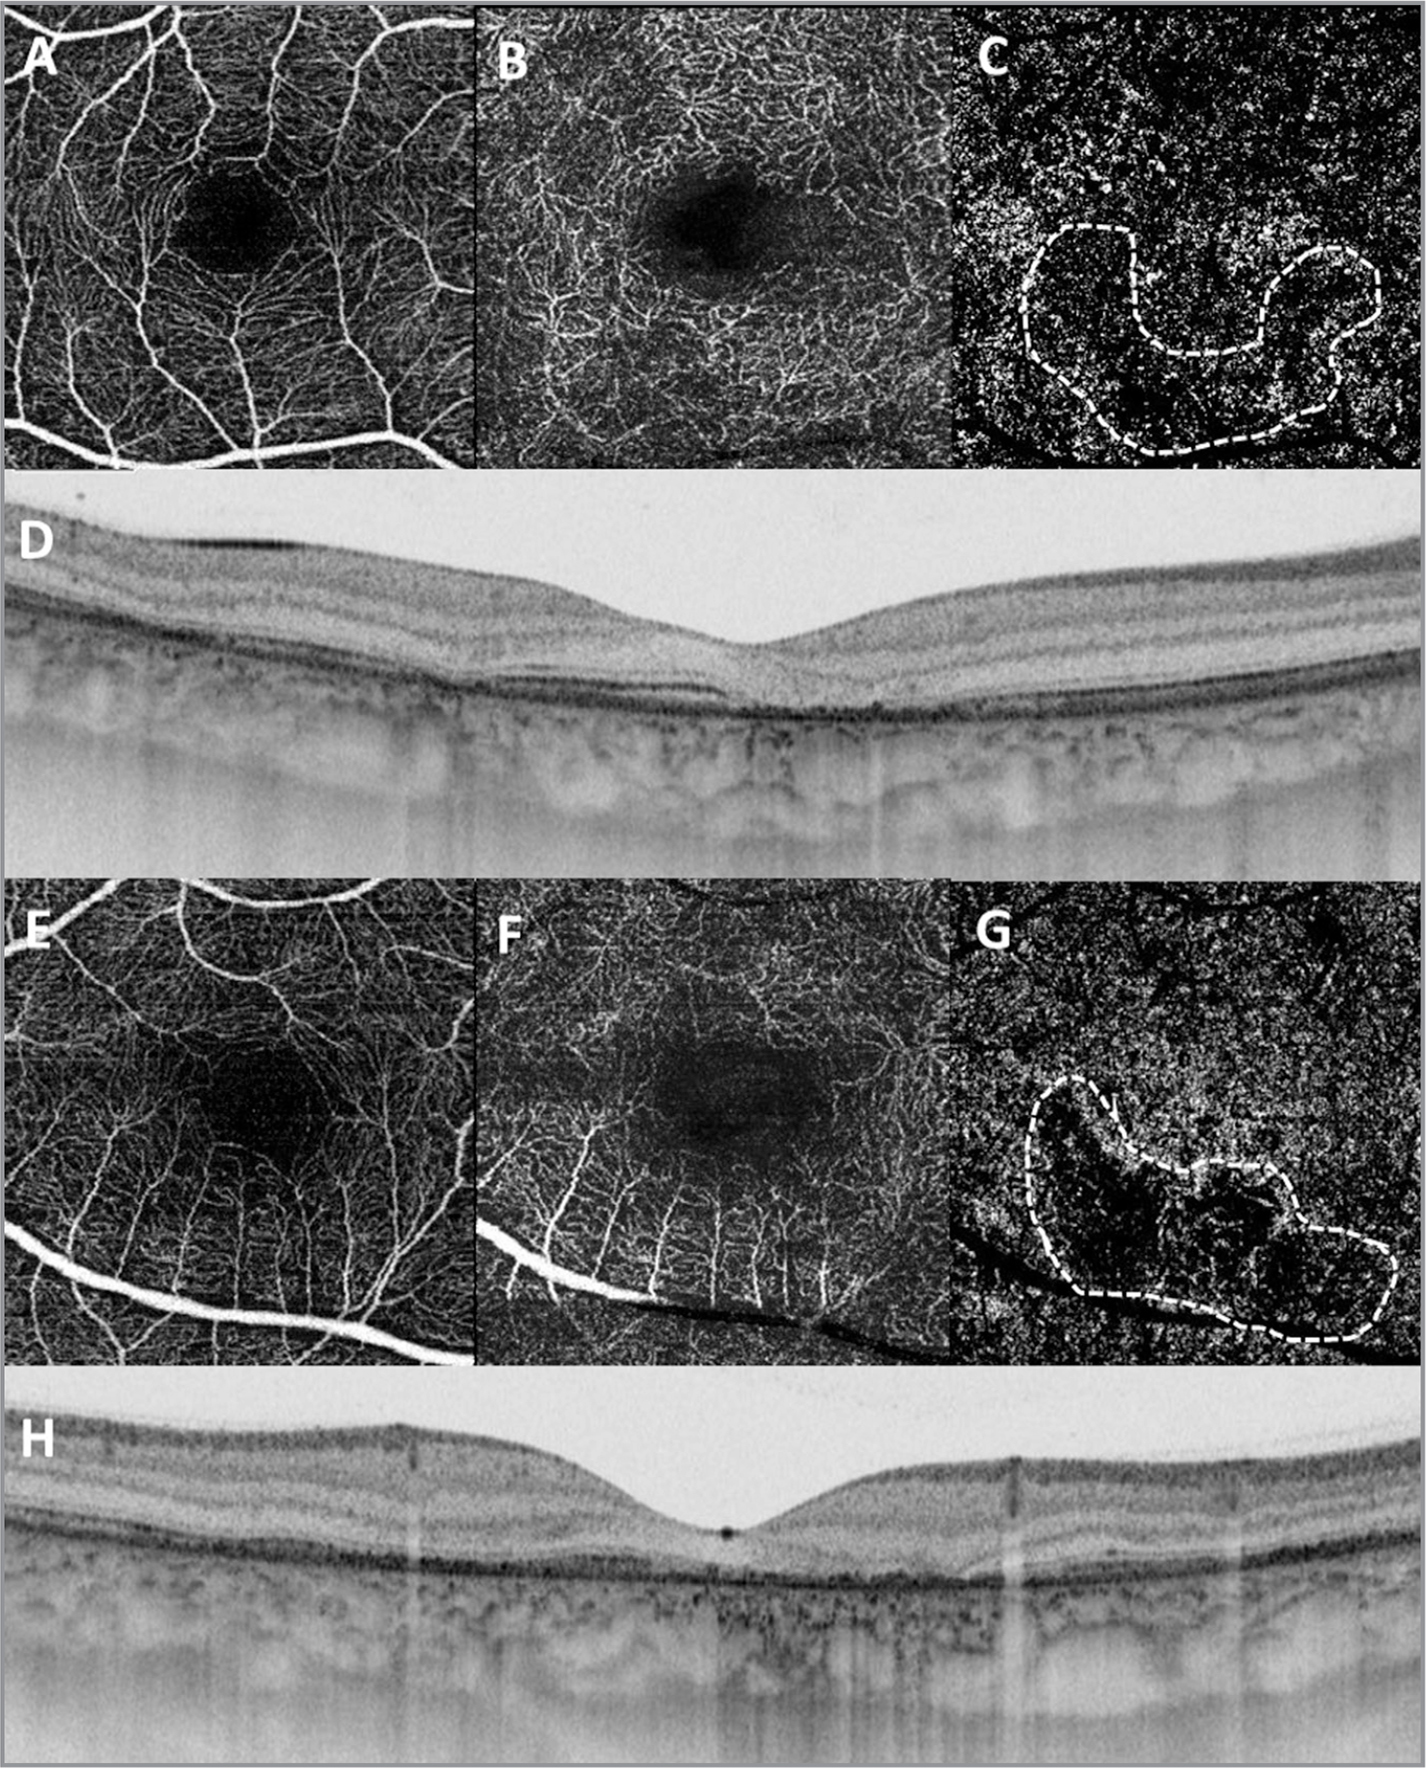 Optical coherence tomography angiography (OCTA) of patient No. 2. Swept-source OCTA. (A) Normal superficial plexus. (B) Deep retinal vascular plexus with some voids of vessels. (C) Choriocapillaris with large area of reduced perfusion (white dotted area).